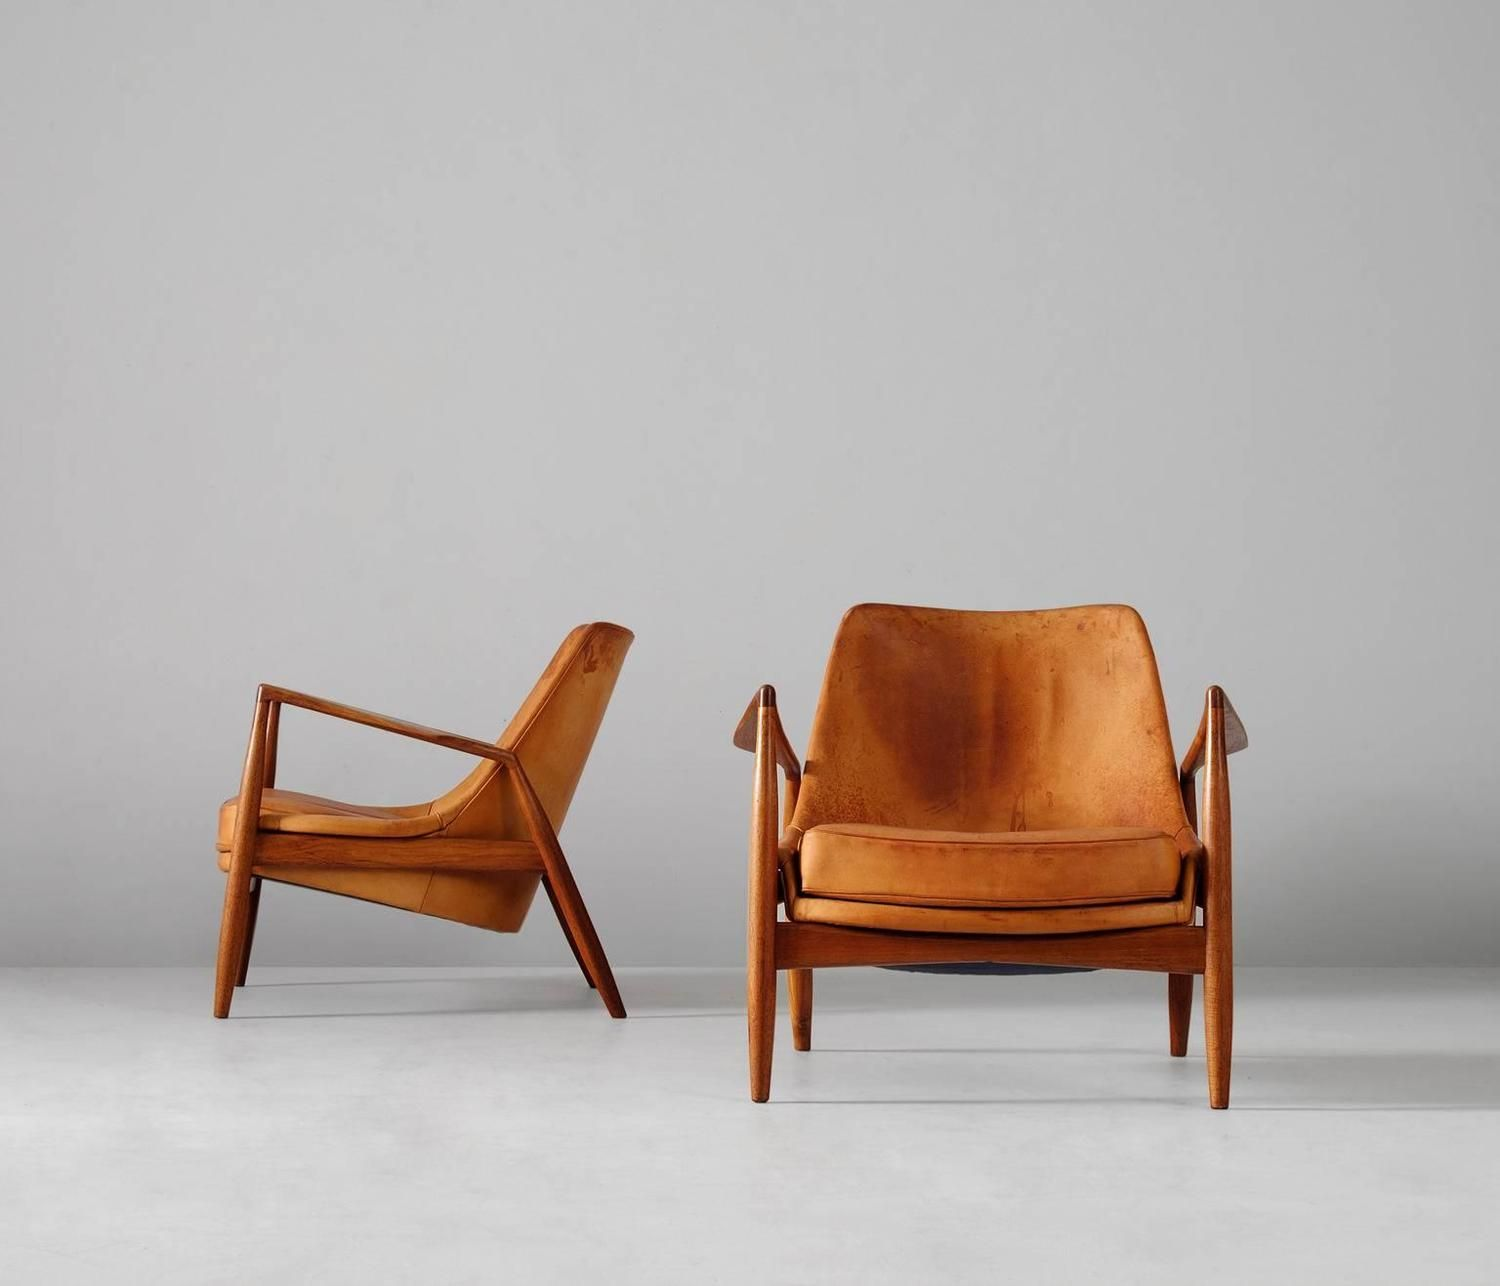 Ib KofodLarsen Pair of 'Seal' Lounge Chairs in Cognac Leather, Sweden, 1956 is part of Arm chairs living room - For Sale on 1stdibs  Stunning pair of 'Seal' lounge chairs in original cognac leather, designed by Ib Kofod Larsen  Produced by OPE Sweden, 1956  This extremely rare model